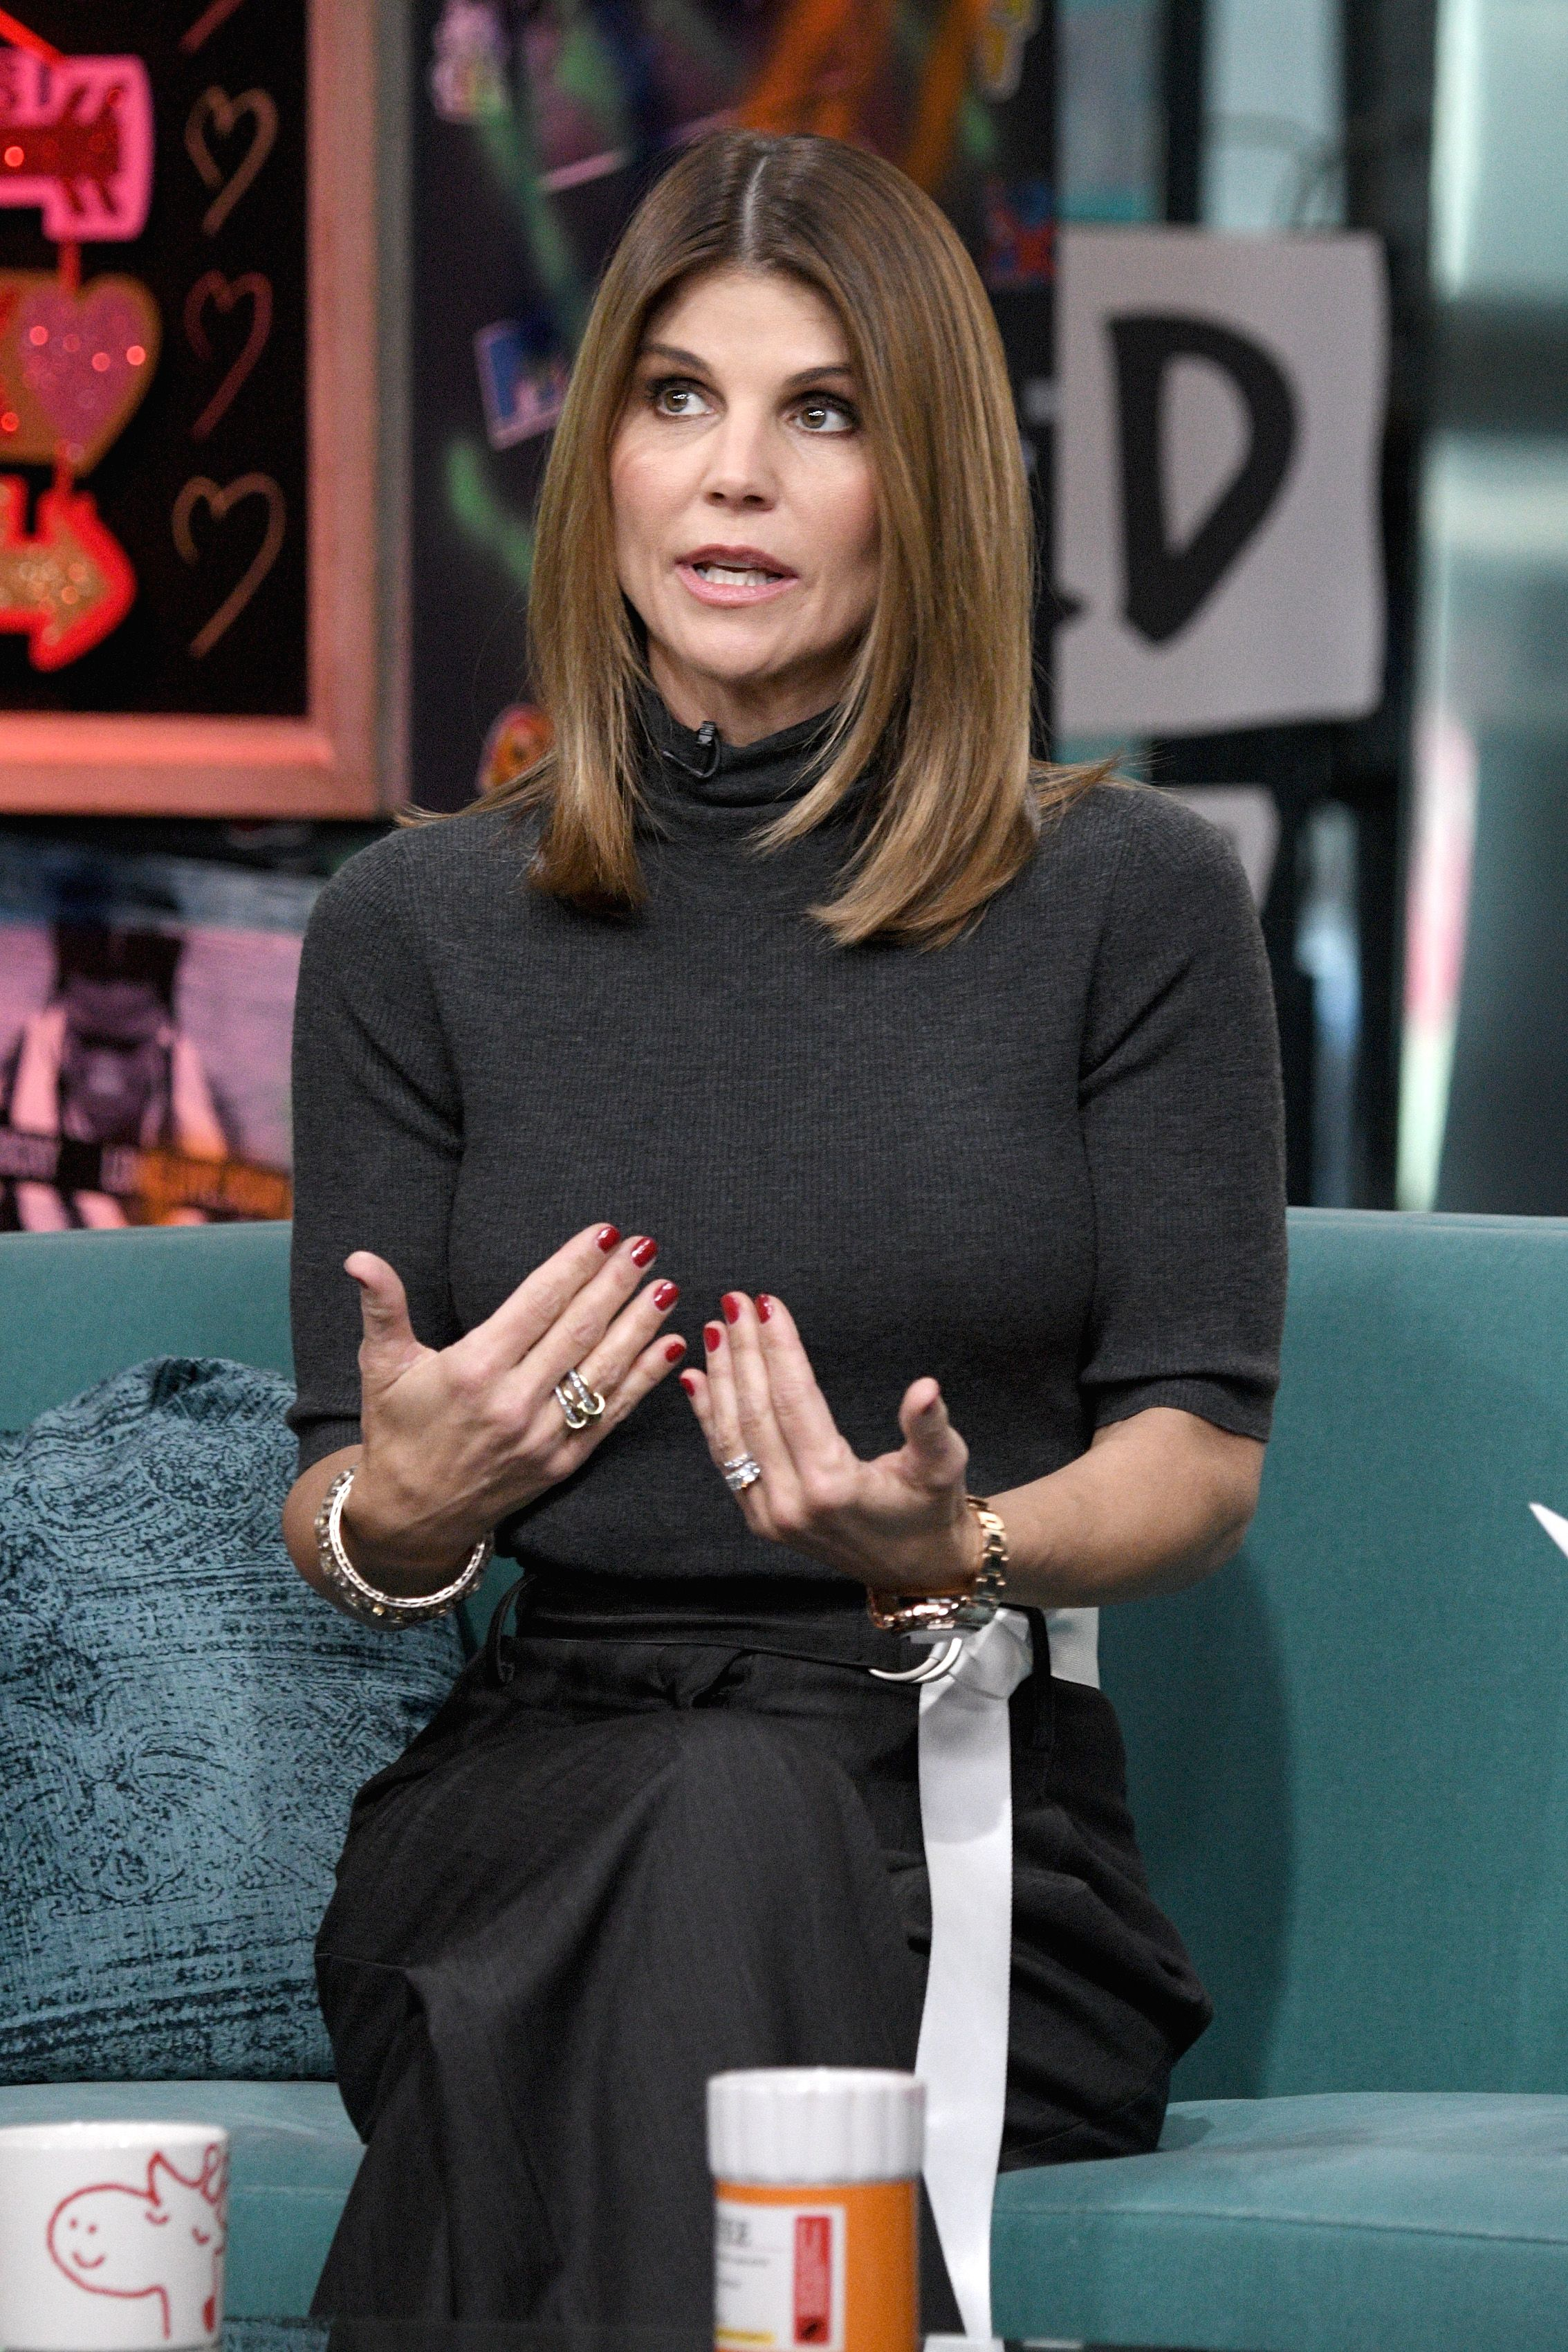 Actress Lori Loughlin visits the Build Brunch to discuss the Hallmark Channel TV series 'When Calls the Heart' at Build Studio on February 2019 in New York City | Photo: Gary Gershoff/Getty Images